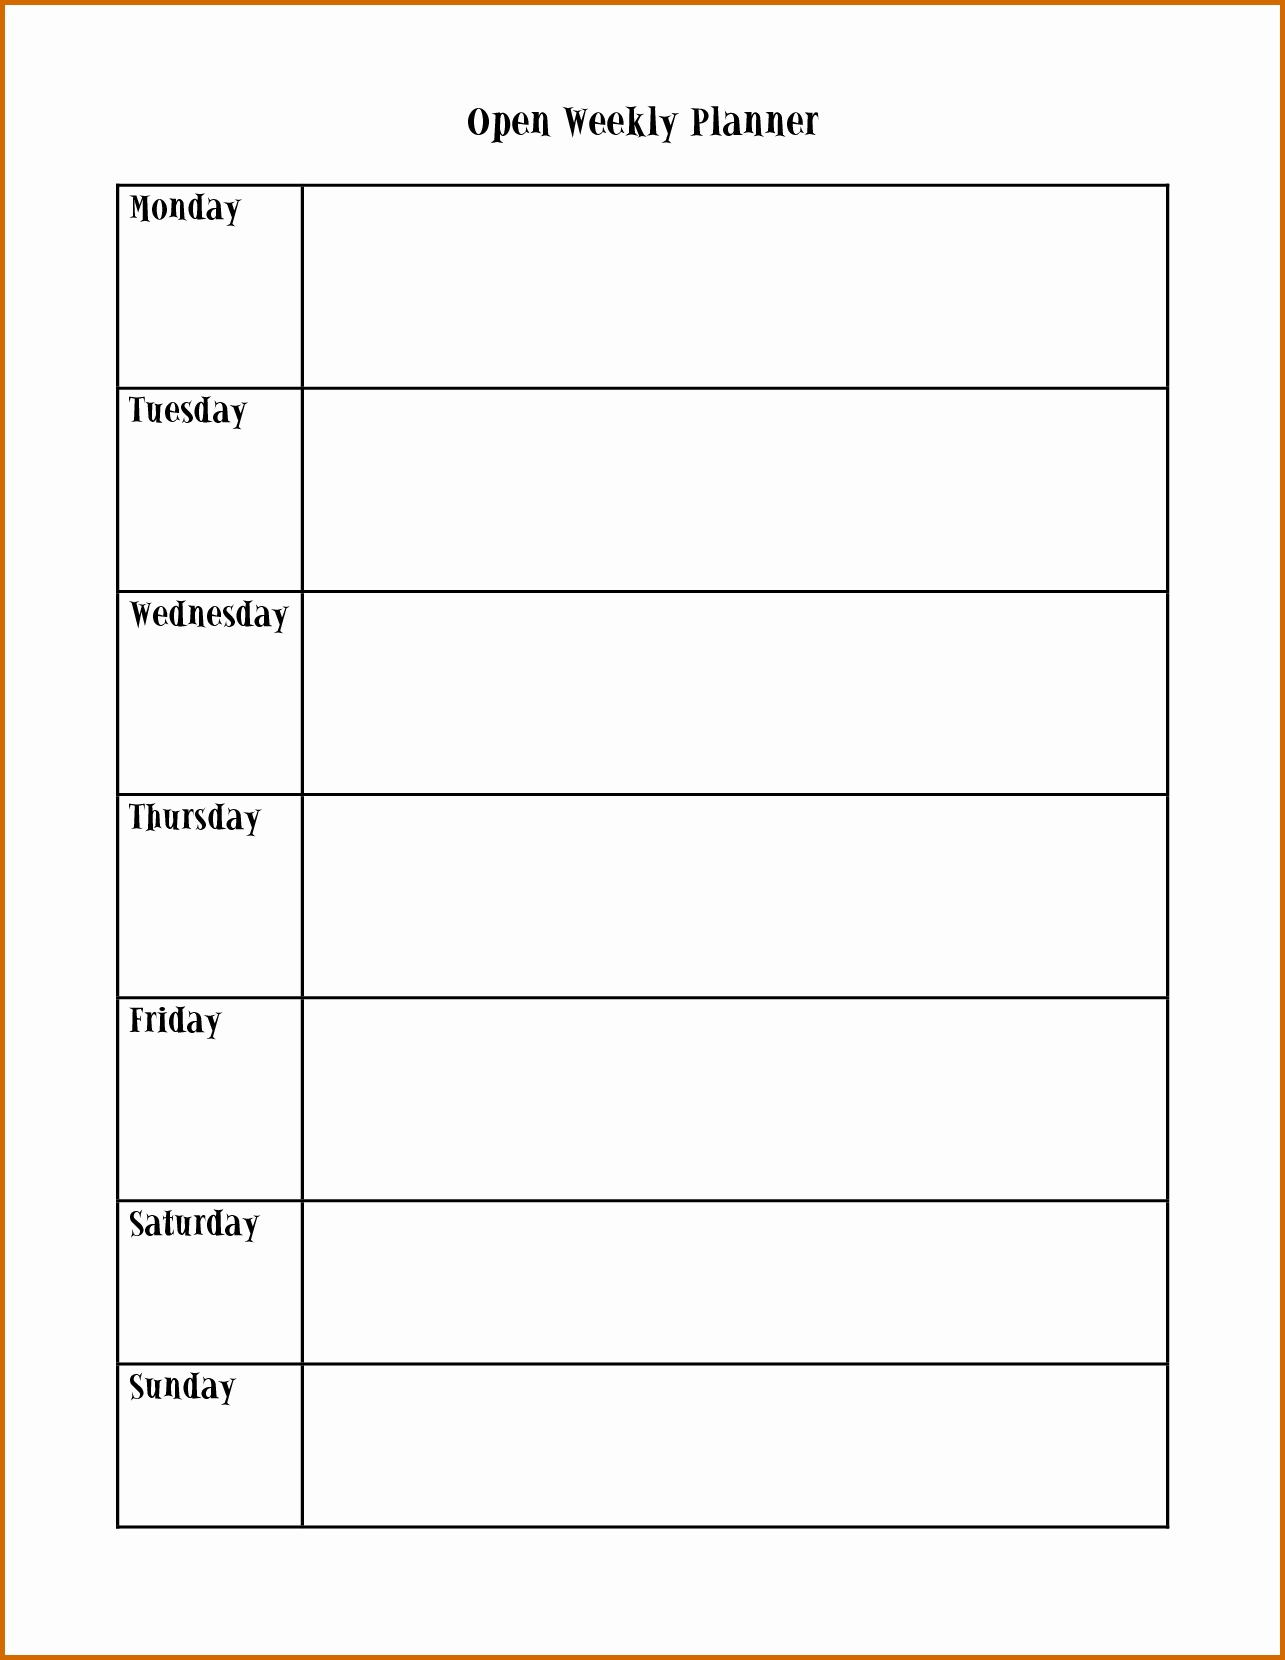 Printable Appointment Calendars Monday Through Friday Mon - Fri Calender Layout Download